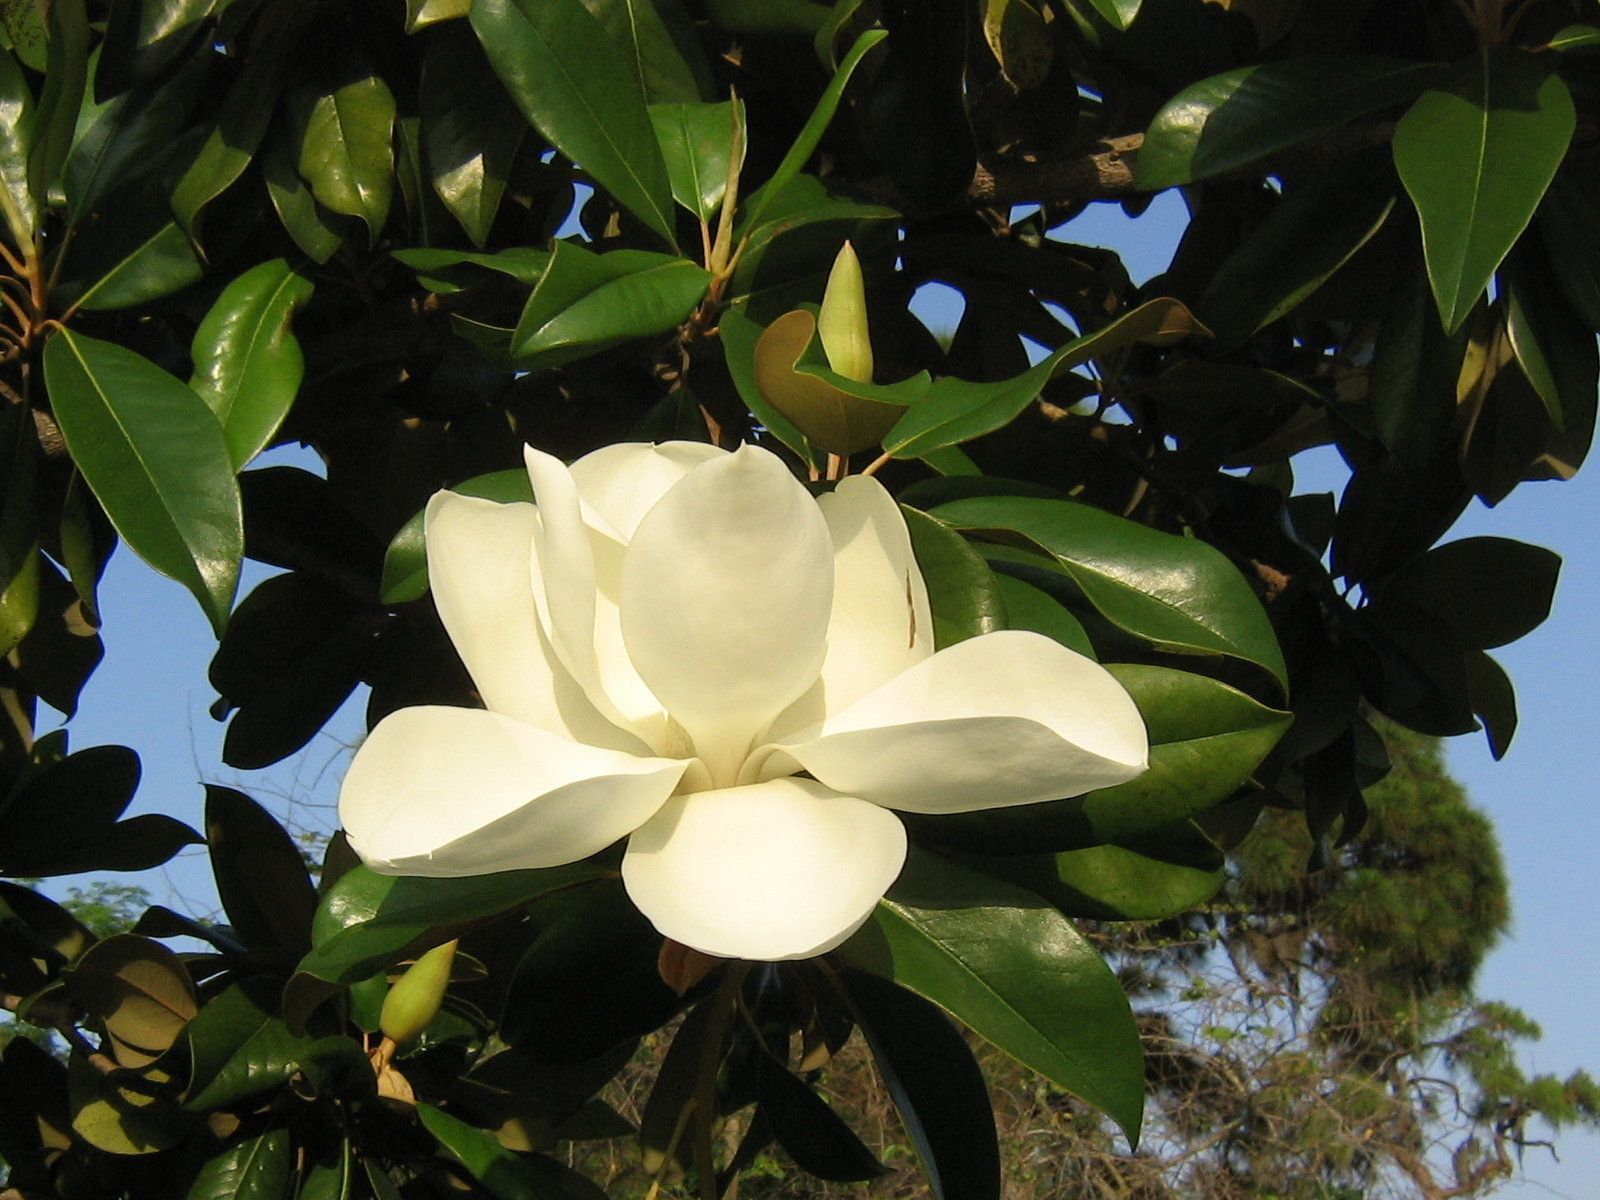 Favorite Flower Tree Has To Be The Magnolia Pretty Flowers Magnolia Trees Flowering Trees